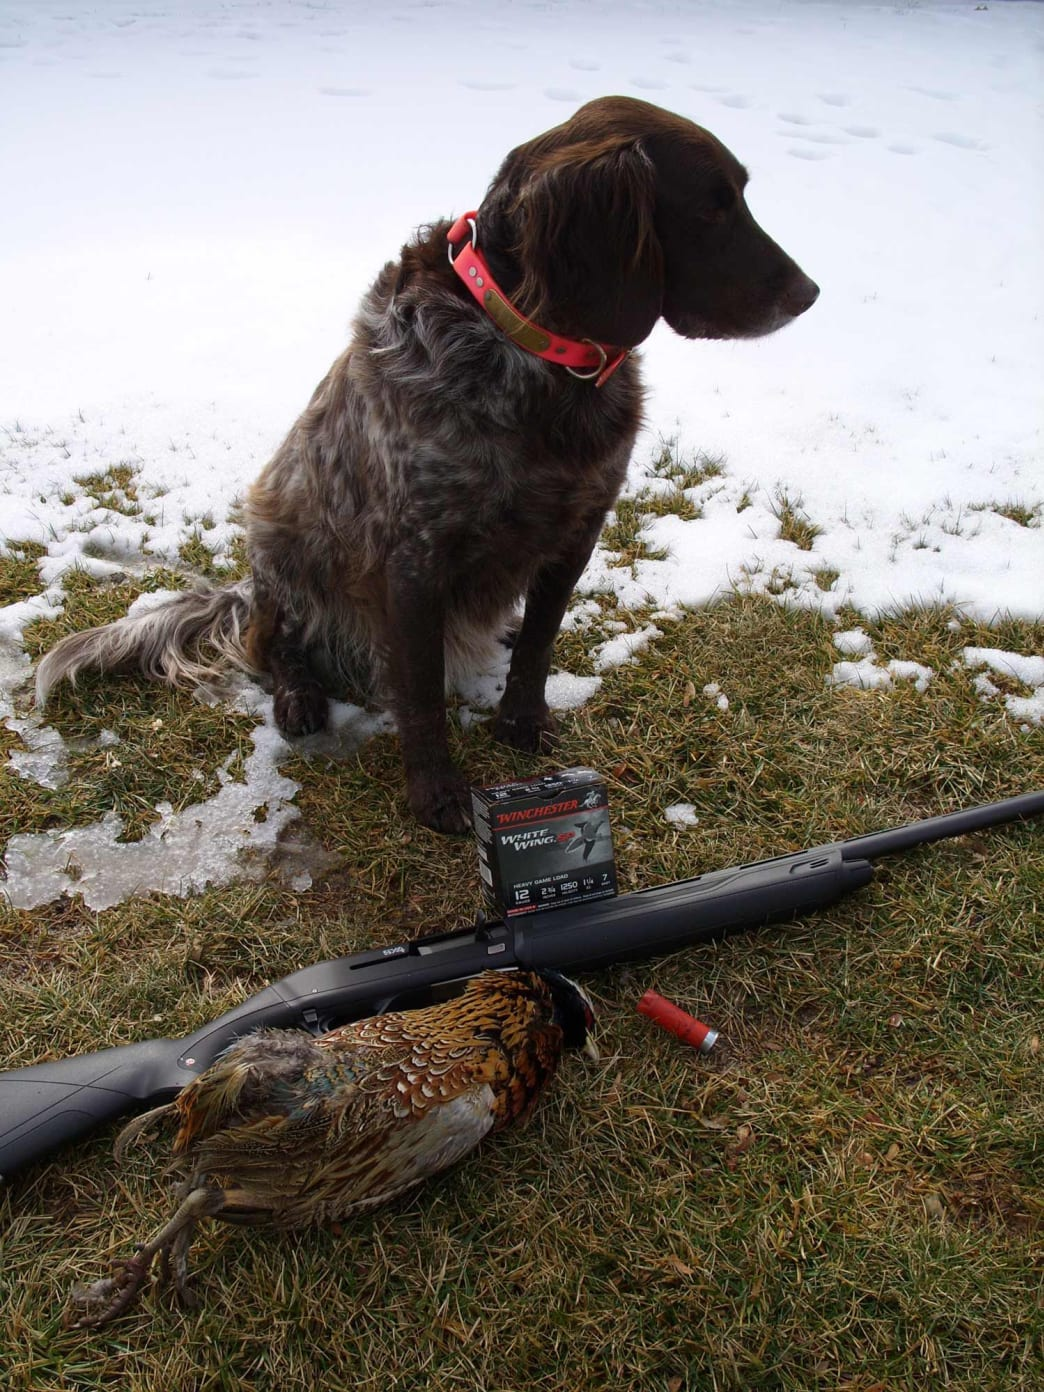 The rooster pheasant, missing a few tail feathers, and Phantom after the retrieve.